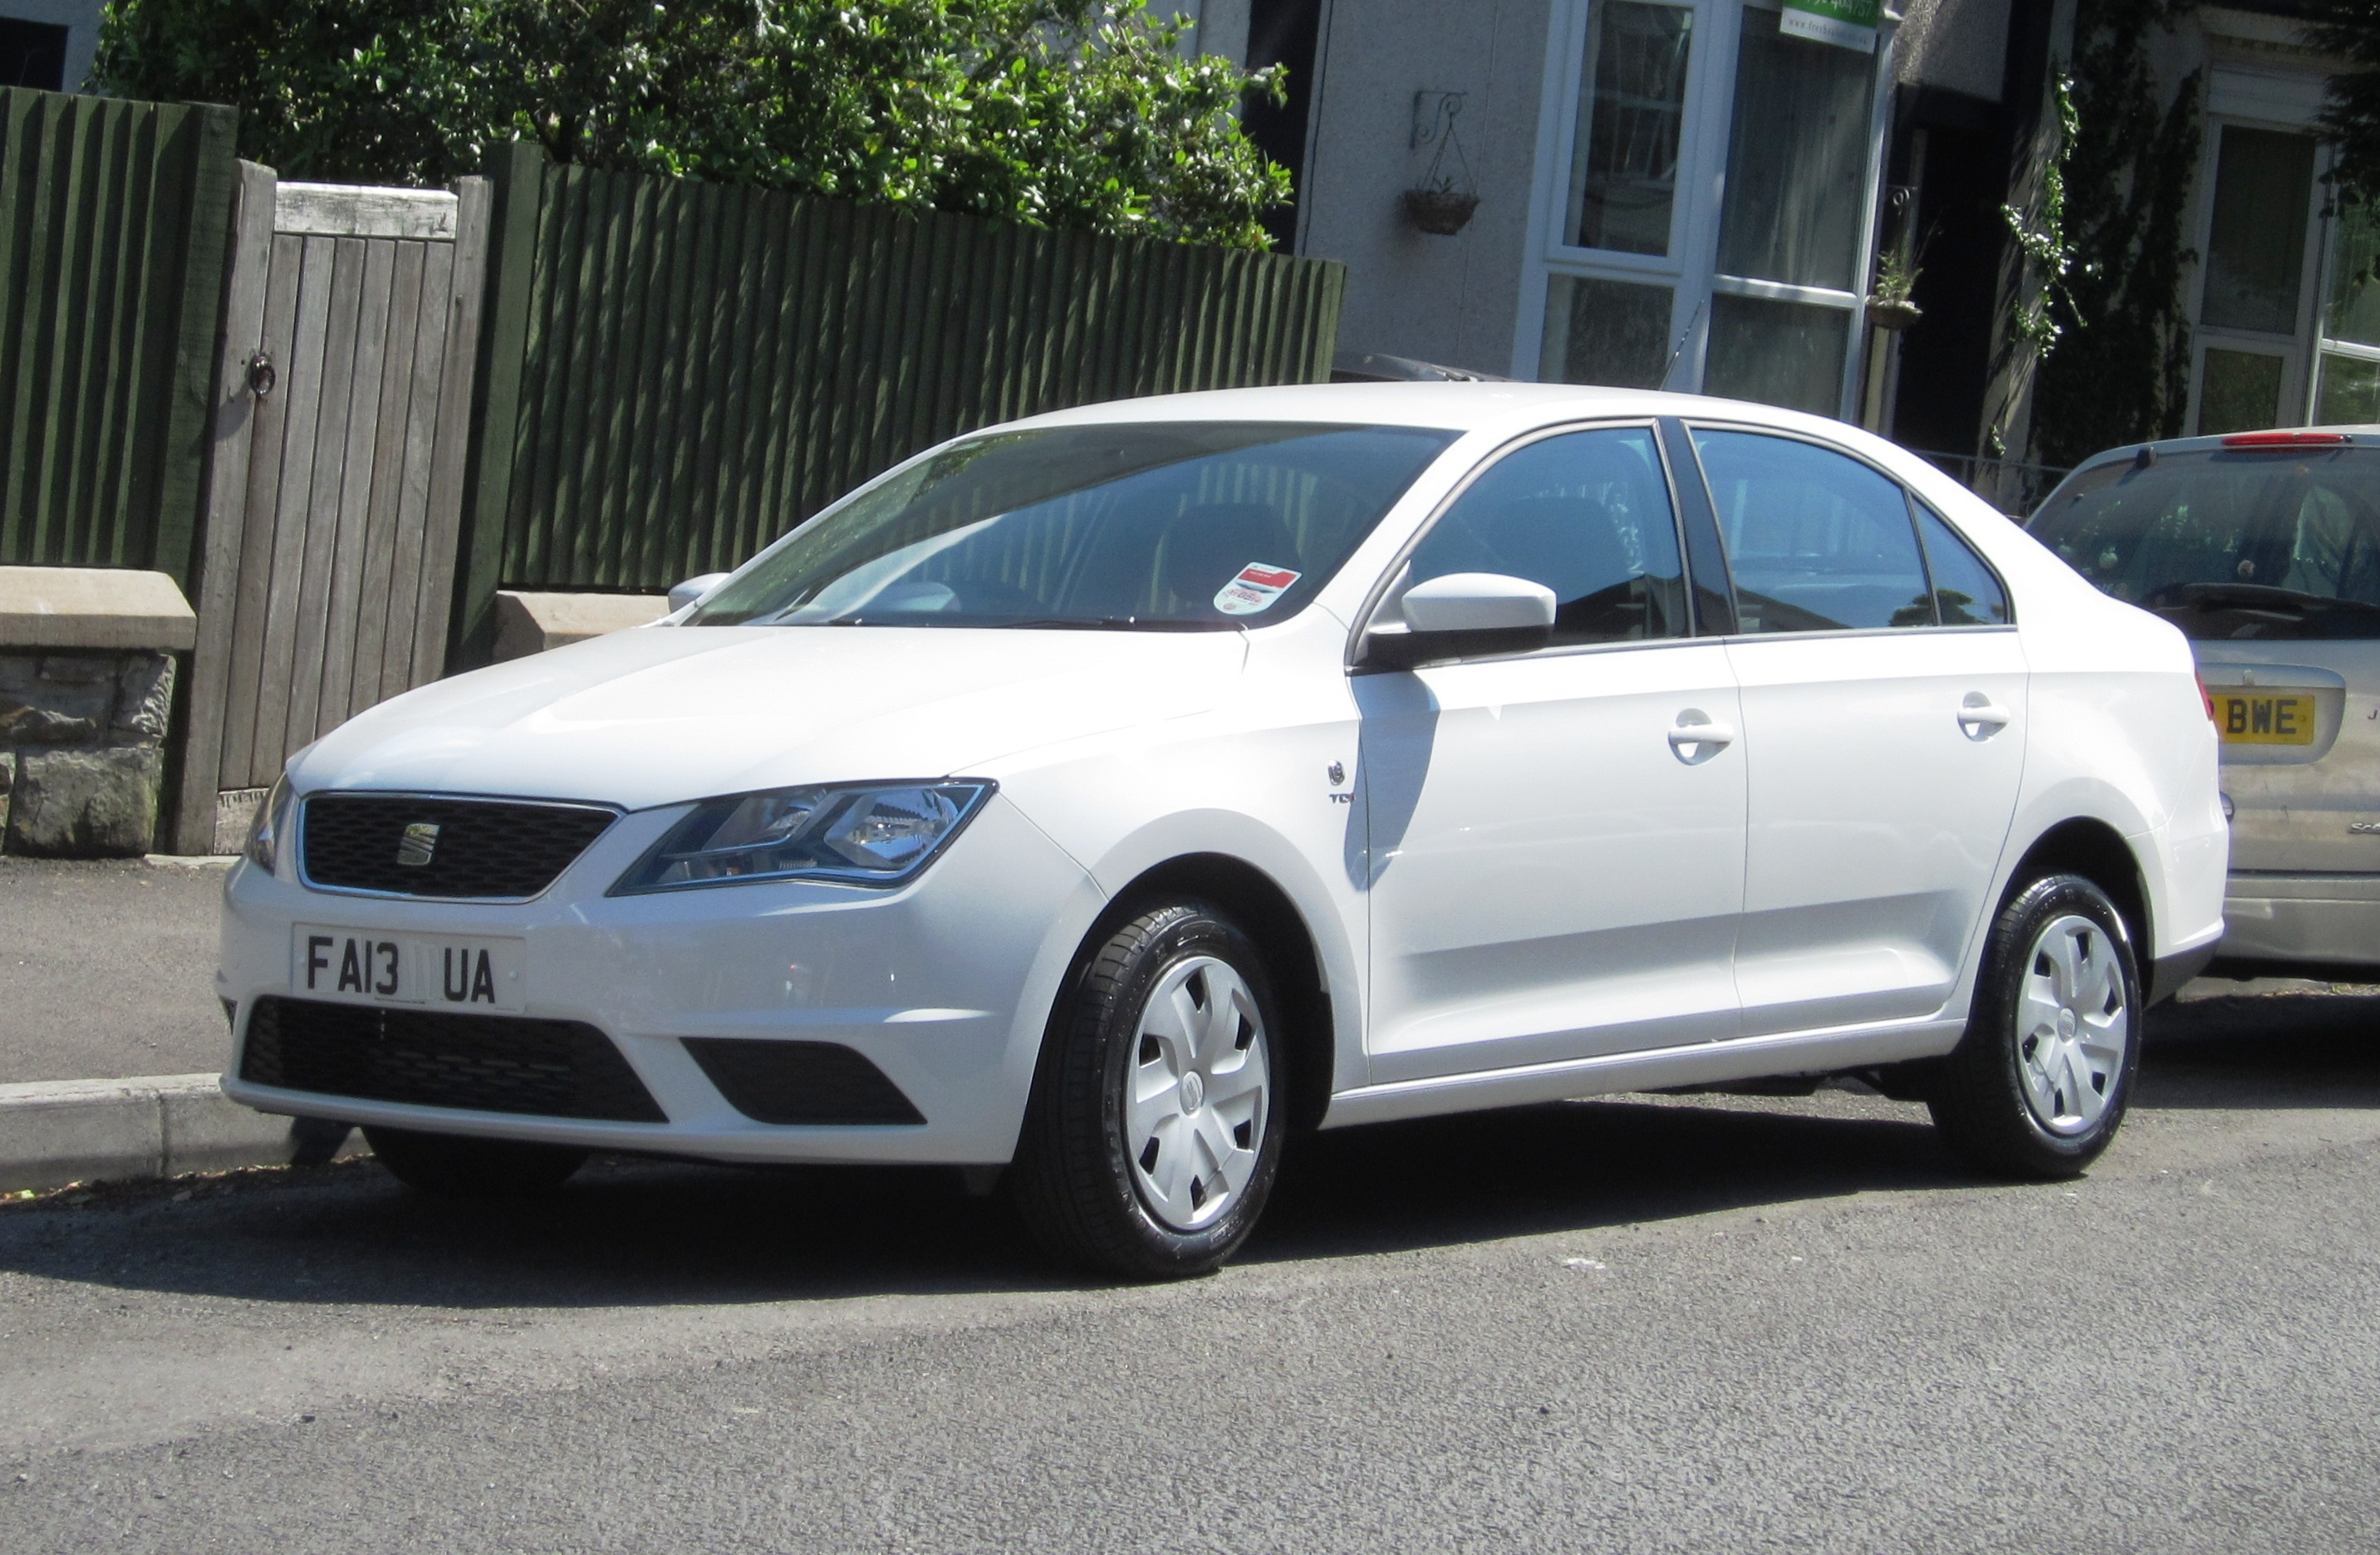 2005 seat toledo iii 5p pictures information and specs auto. Black Bedroom Furniture Sets. Home Design Ideas